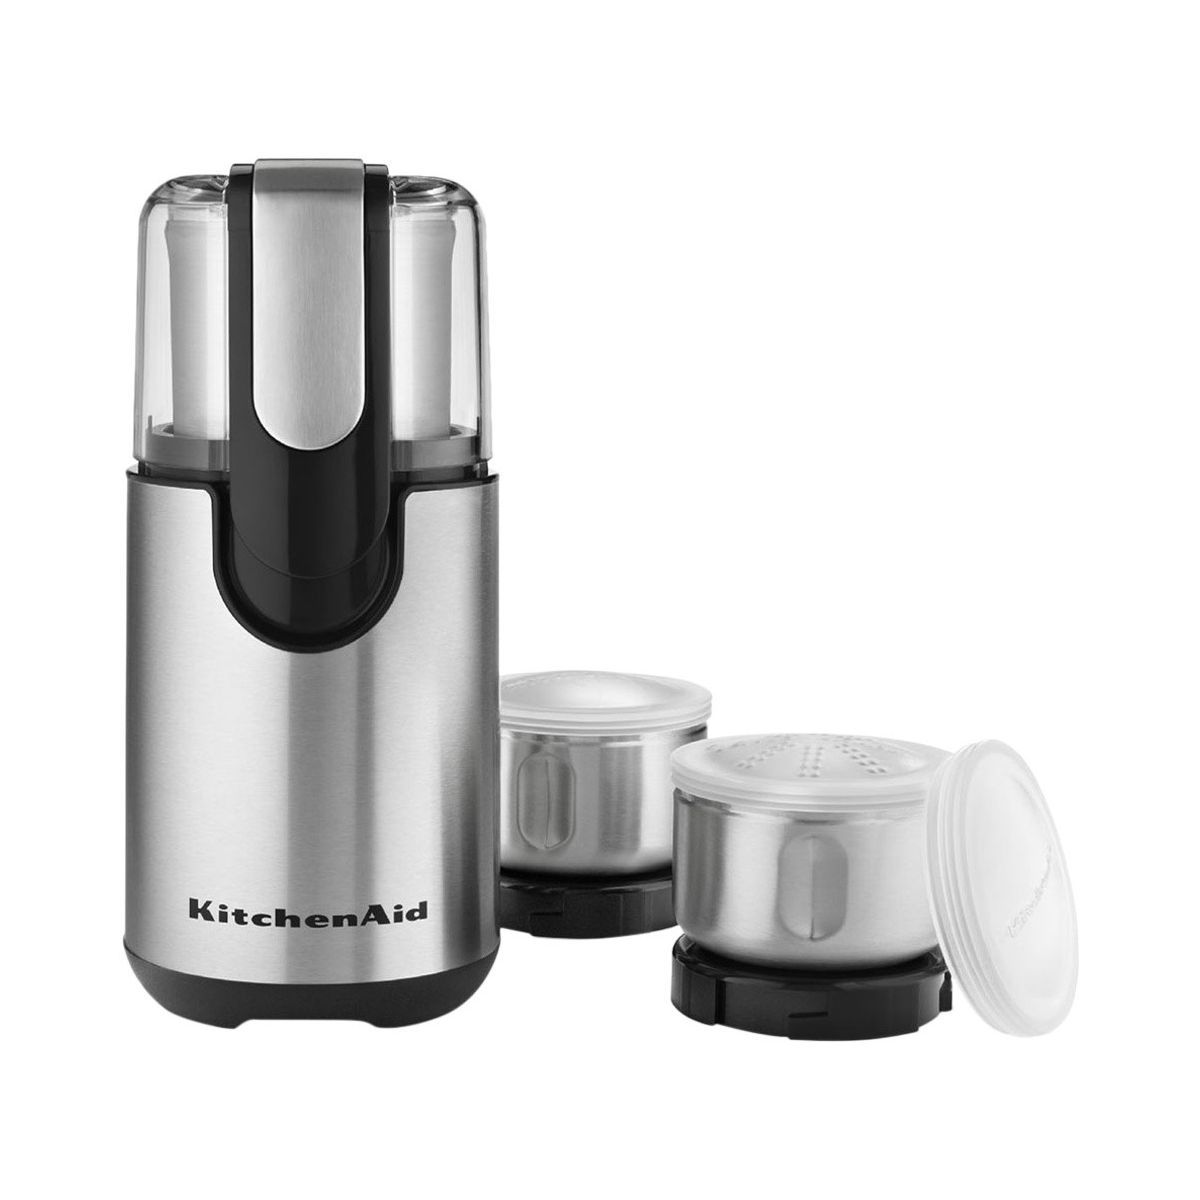 Houzz blade cofee and spice grinder by KitchenAid photo